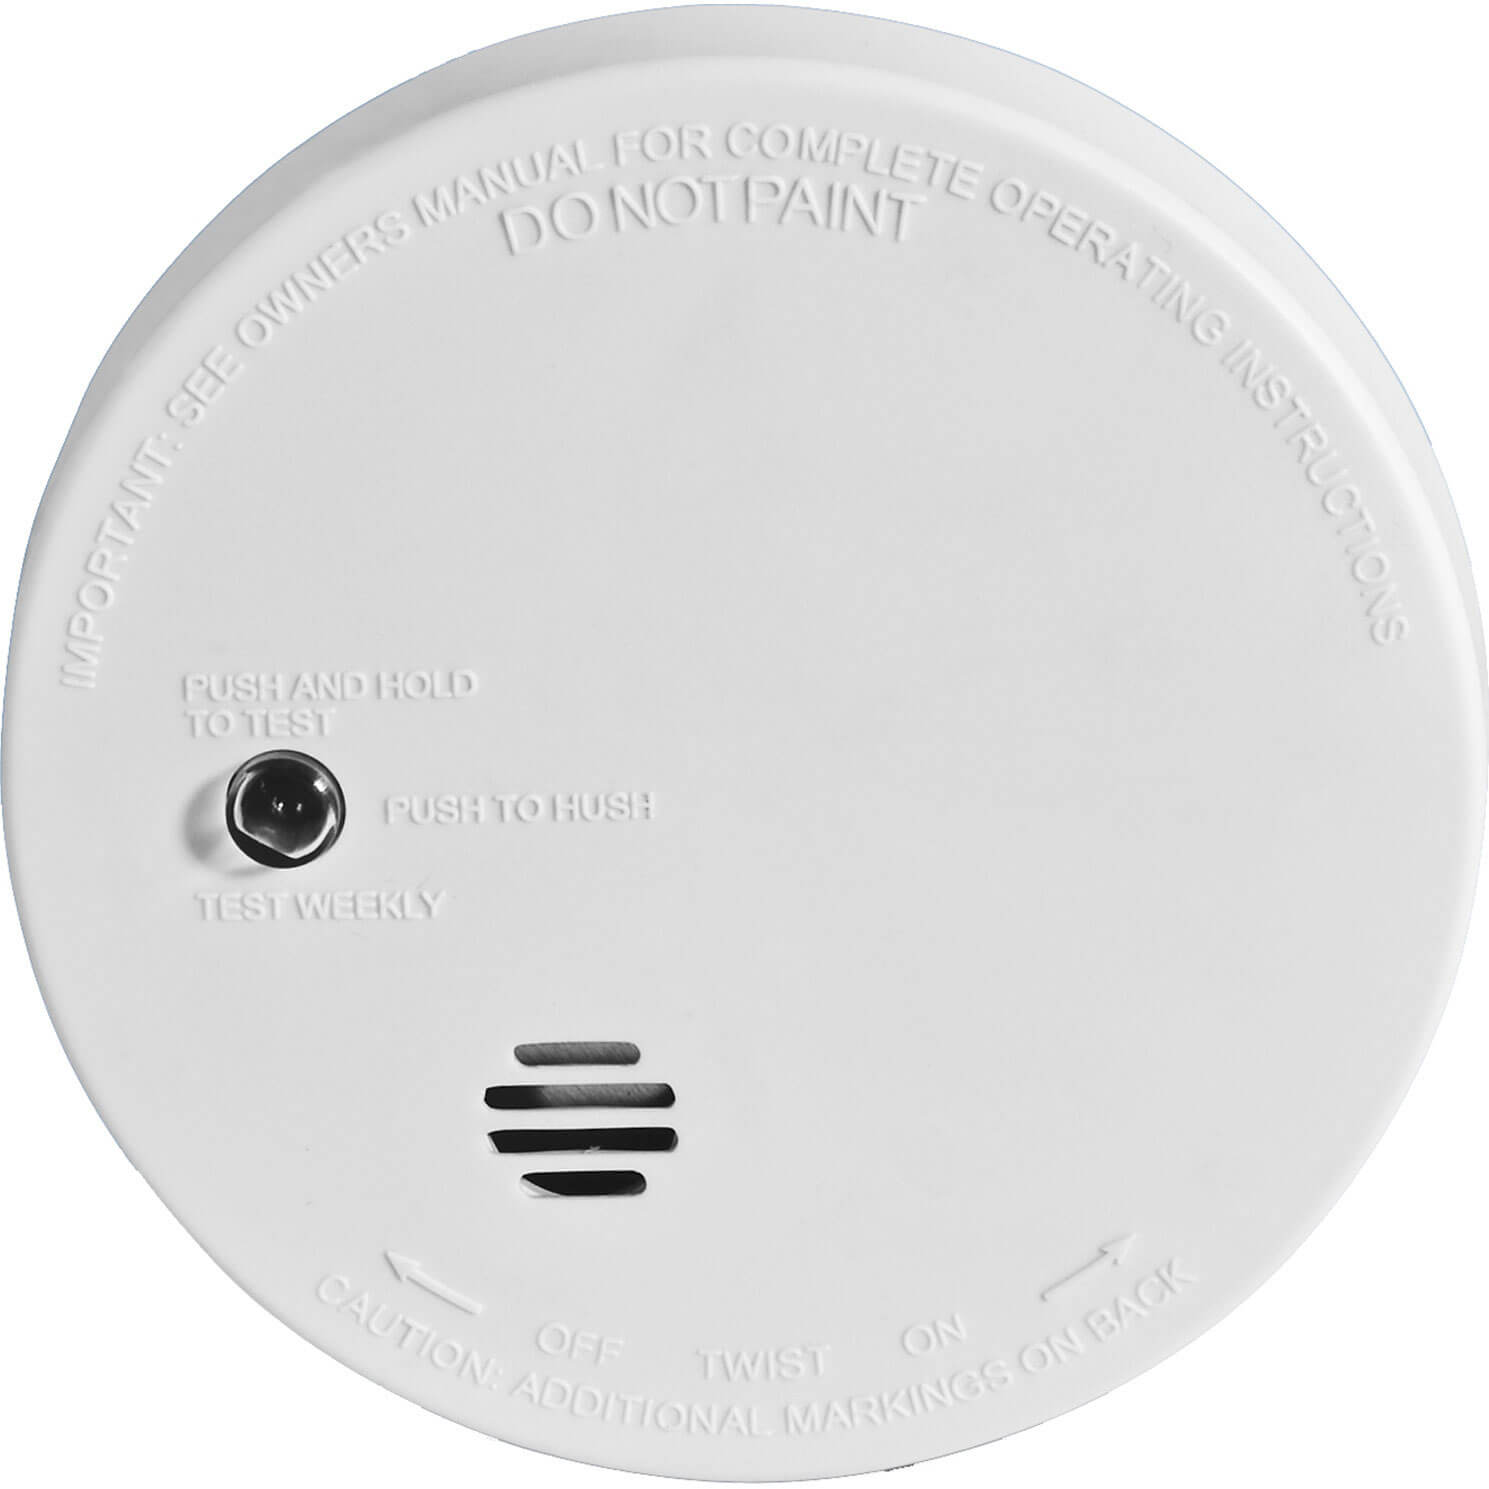 Kidde Smoke Alarm With Micro Test Hush Button